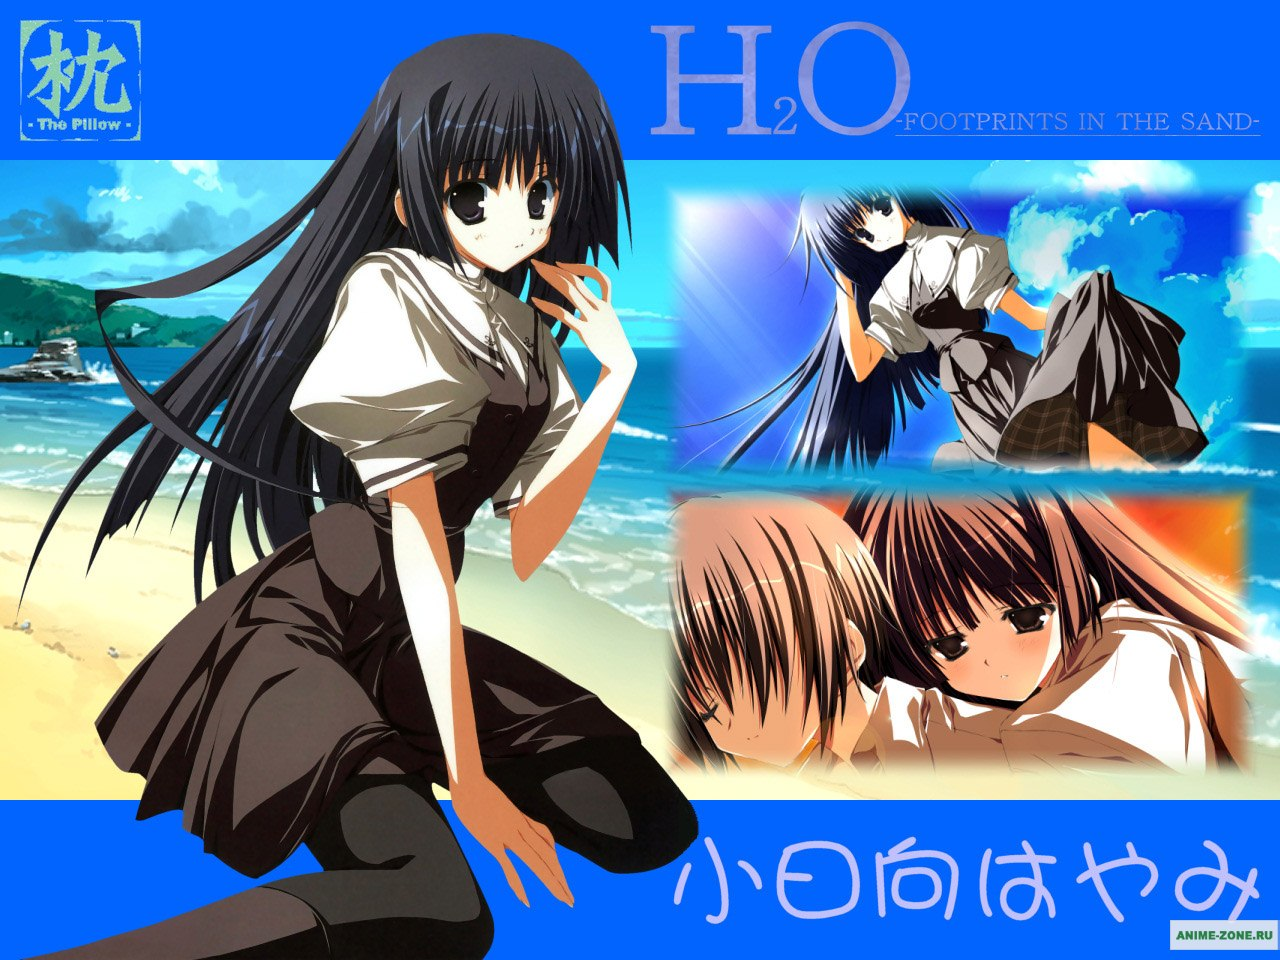 h2o footprints in the sand wallpaper zerochan anime image board